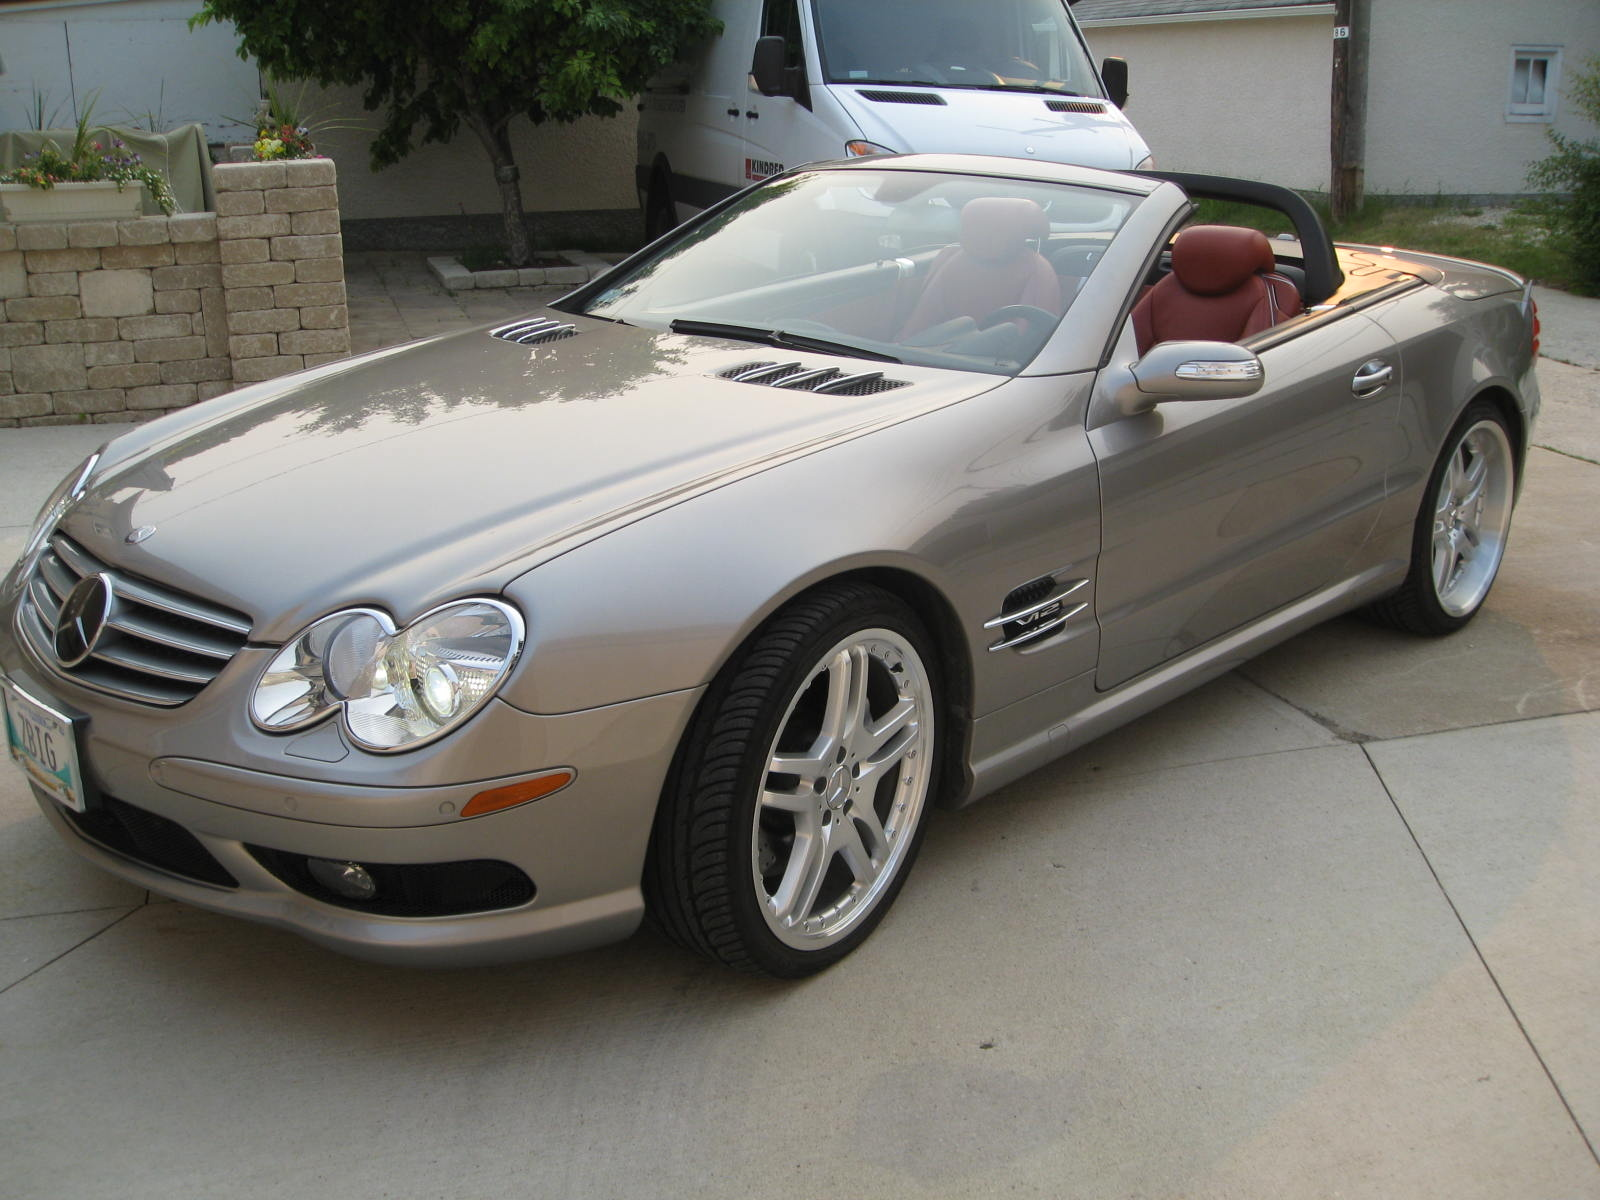 2006 Mercedes-Benz SL-Cl - Overview - CarGurus on 1996 saturn sl, 1996 mercedes amg, 1996 mercedes sl500, 1996 mercedes mx, 1996 mercedes e320 parts, 1996 mercedes e class, 1996 mercedes sl320, 1996 mercedes s class, 1996 mercedes slk, 1996 mercedes clk, 1996 mercedes 450sl, 1996 mercedes ml, 1996 gmc sl, 1996 oldsmobile sl, 1996 mercedes c class, 1996 mercedes e320 gold, 1996 mercedes sel, 1996 mercedes black, 1996 mercedes 500sl, 1996 mercedes convertible,